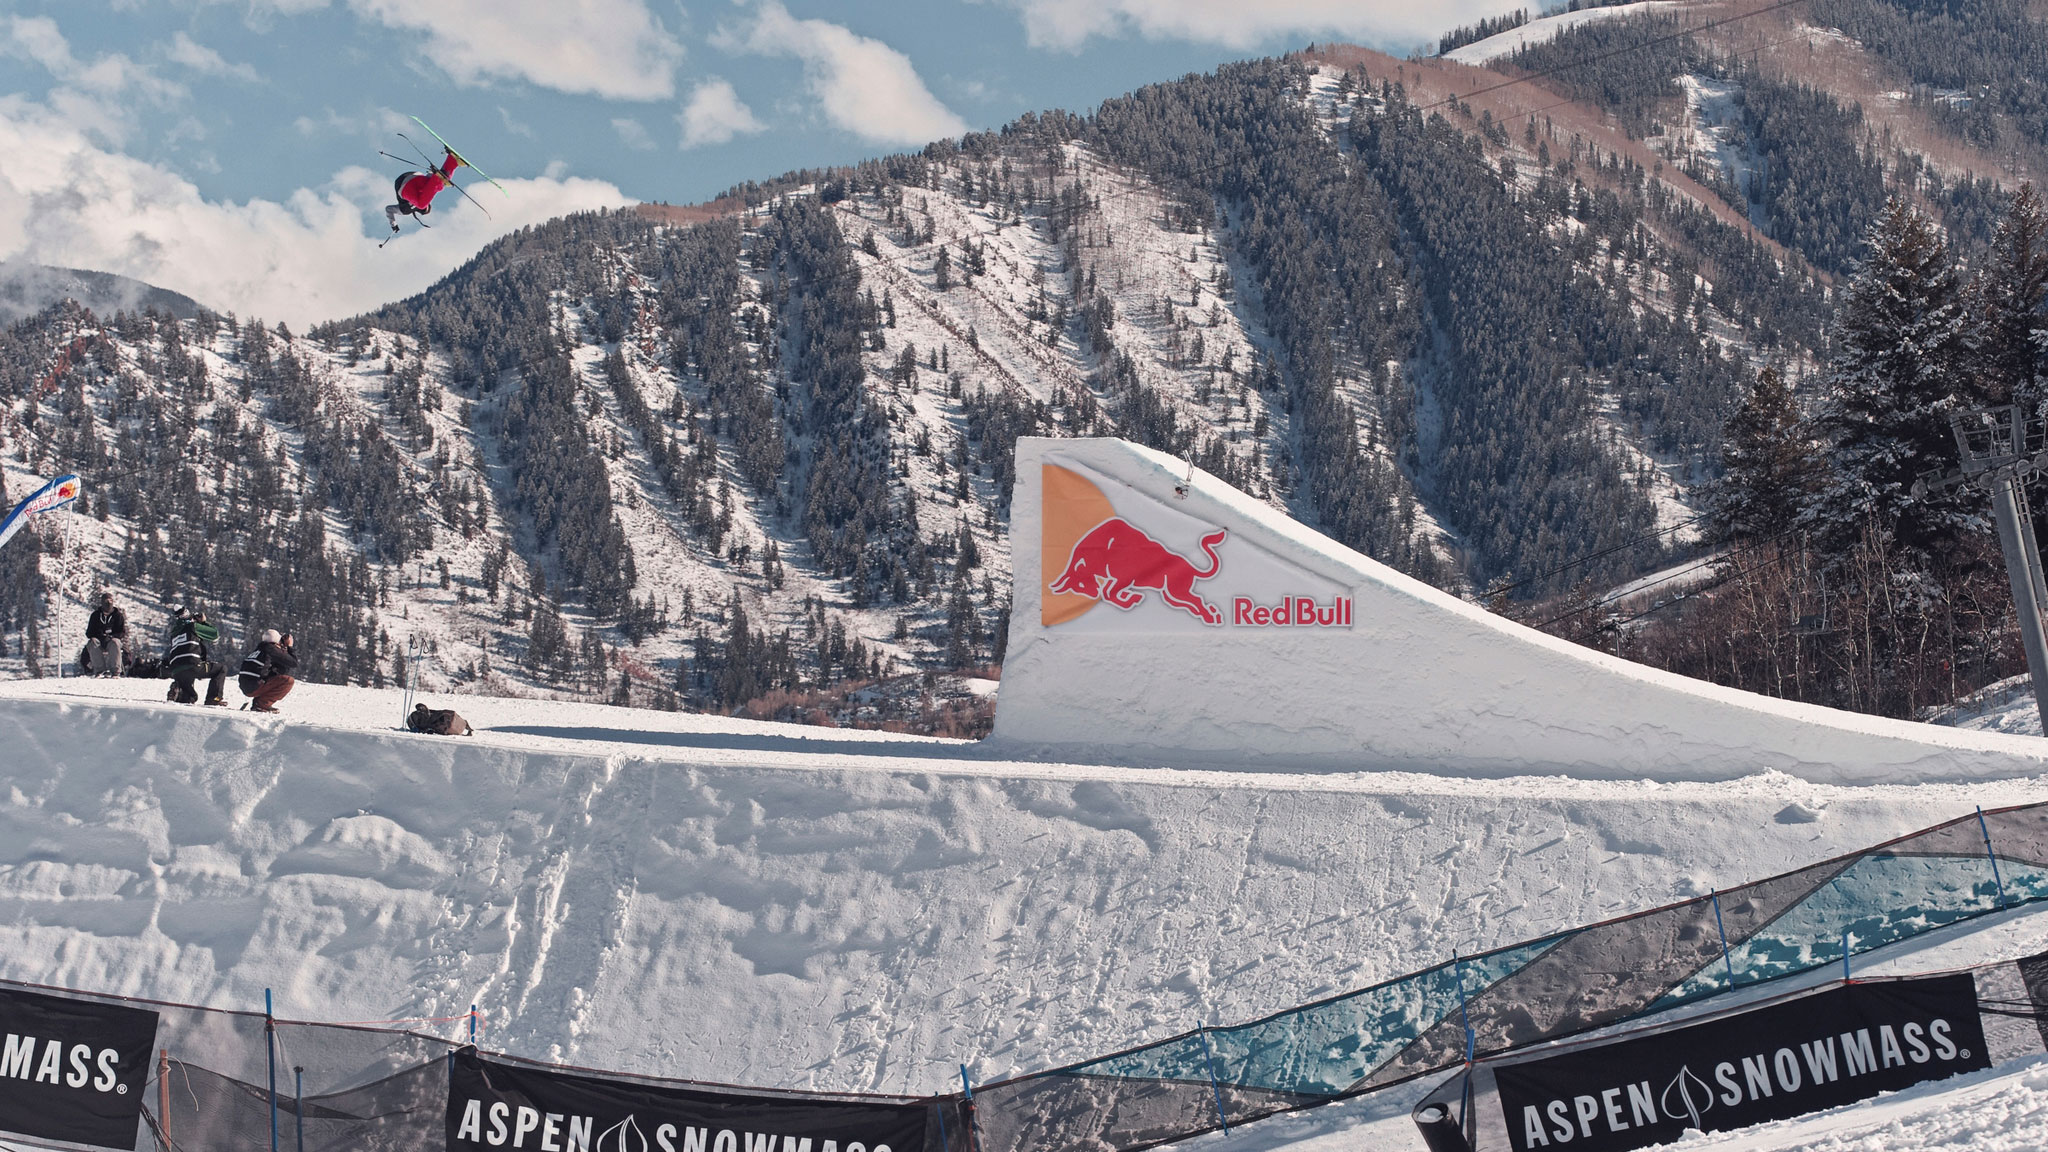 Ashley Battersby is now back and recovered after tearing her ACL at X Games Aspen last year.